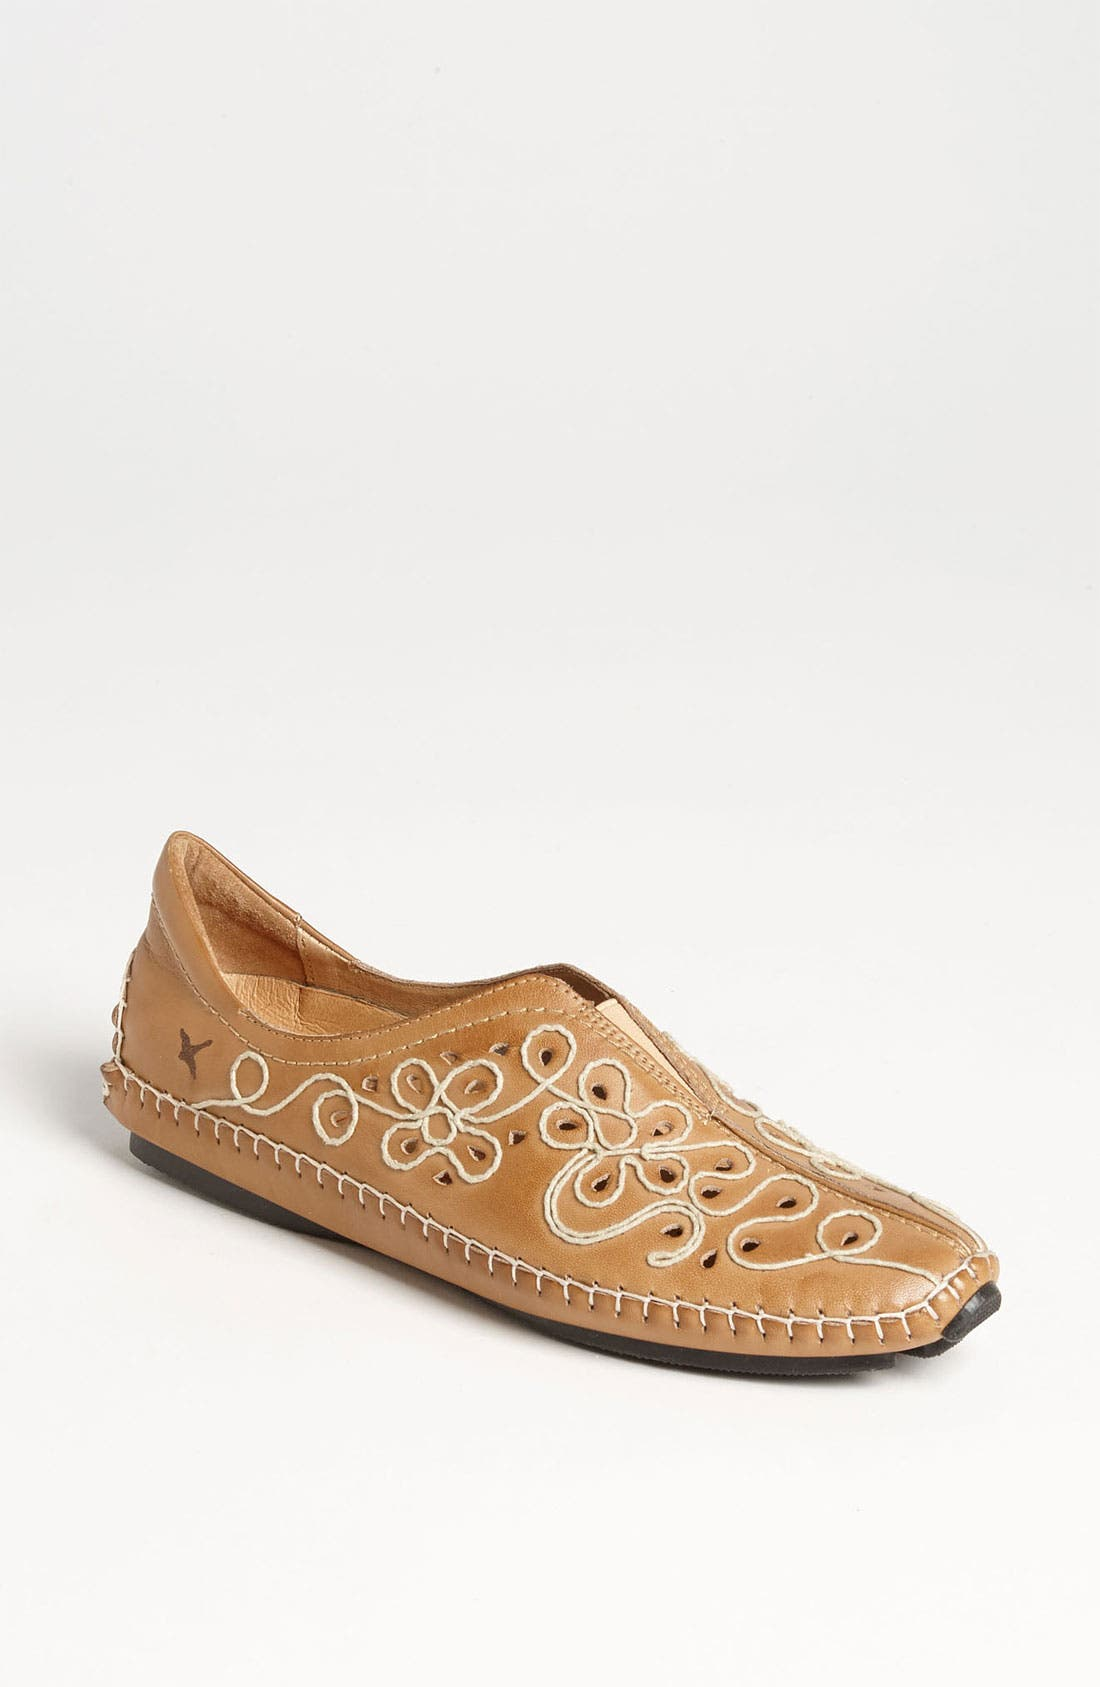 Main Image - PIKOLINOS 'Jerez' Embroidered Loafer